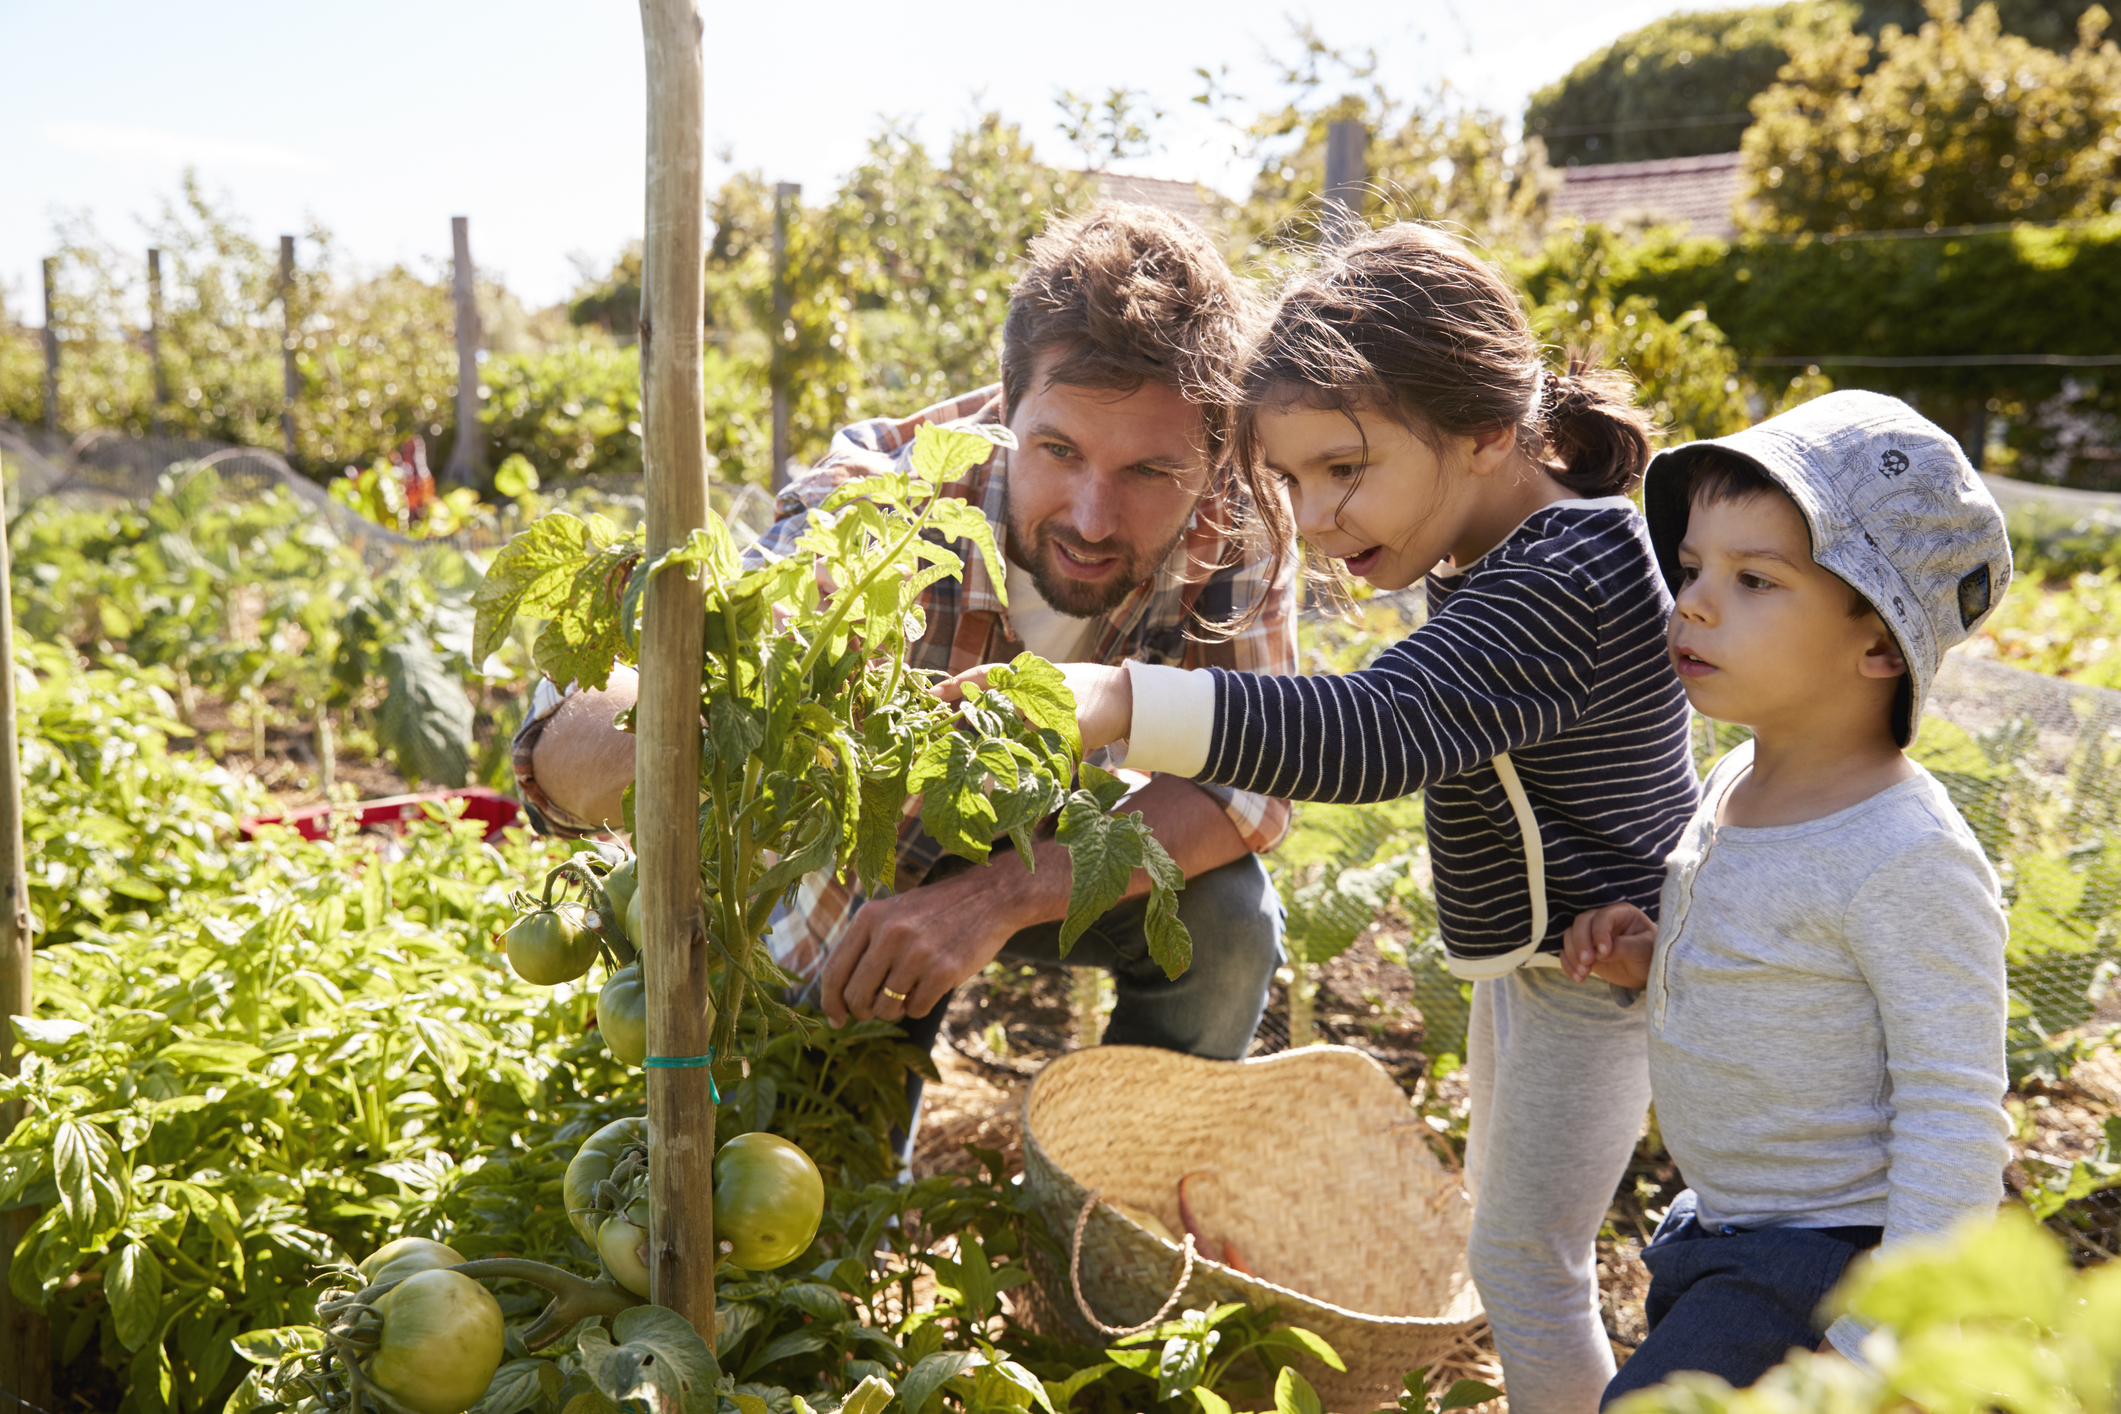 Fun Outdoor Activities for a Healthy Family